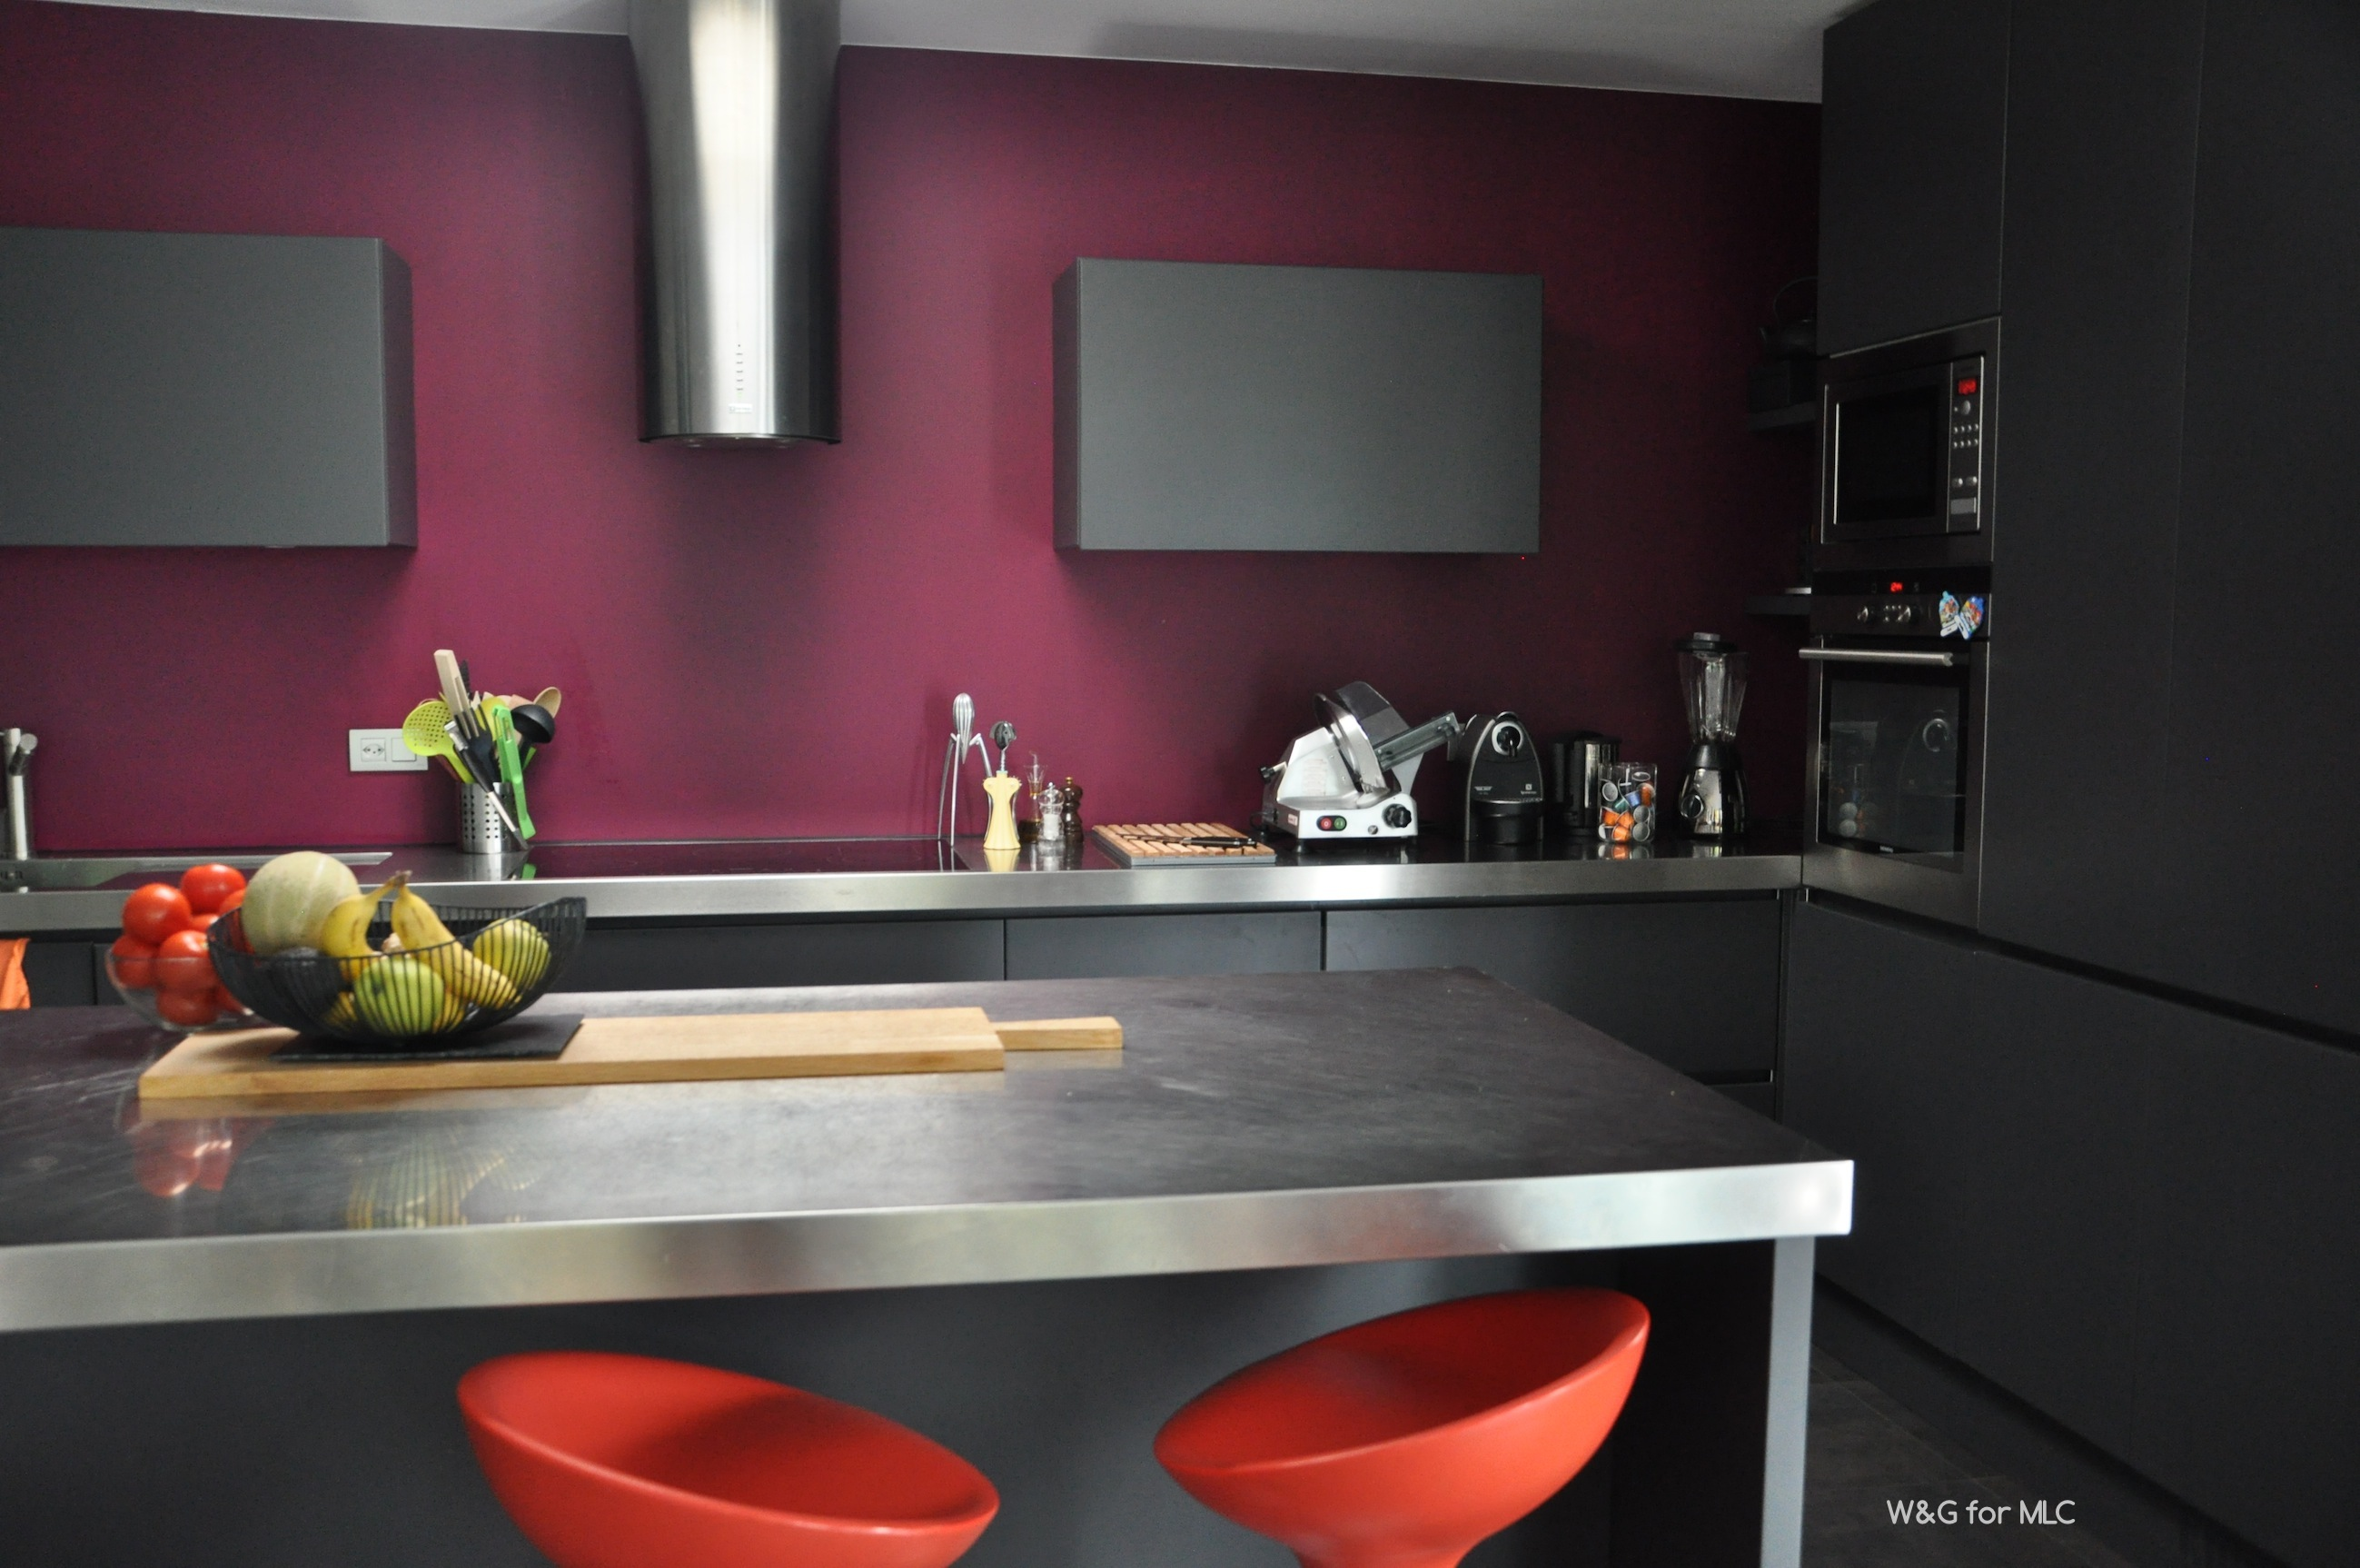 cuisine anthracite sur fond fushia archives le blog d co de mlc. Black Bedroom Furniture Sets. Home Design Ideas